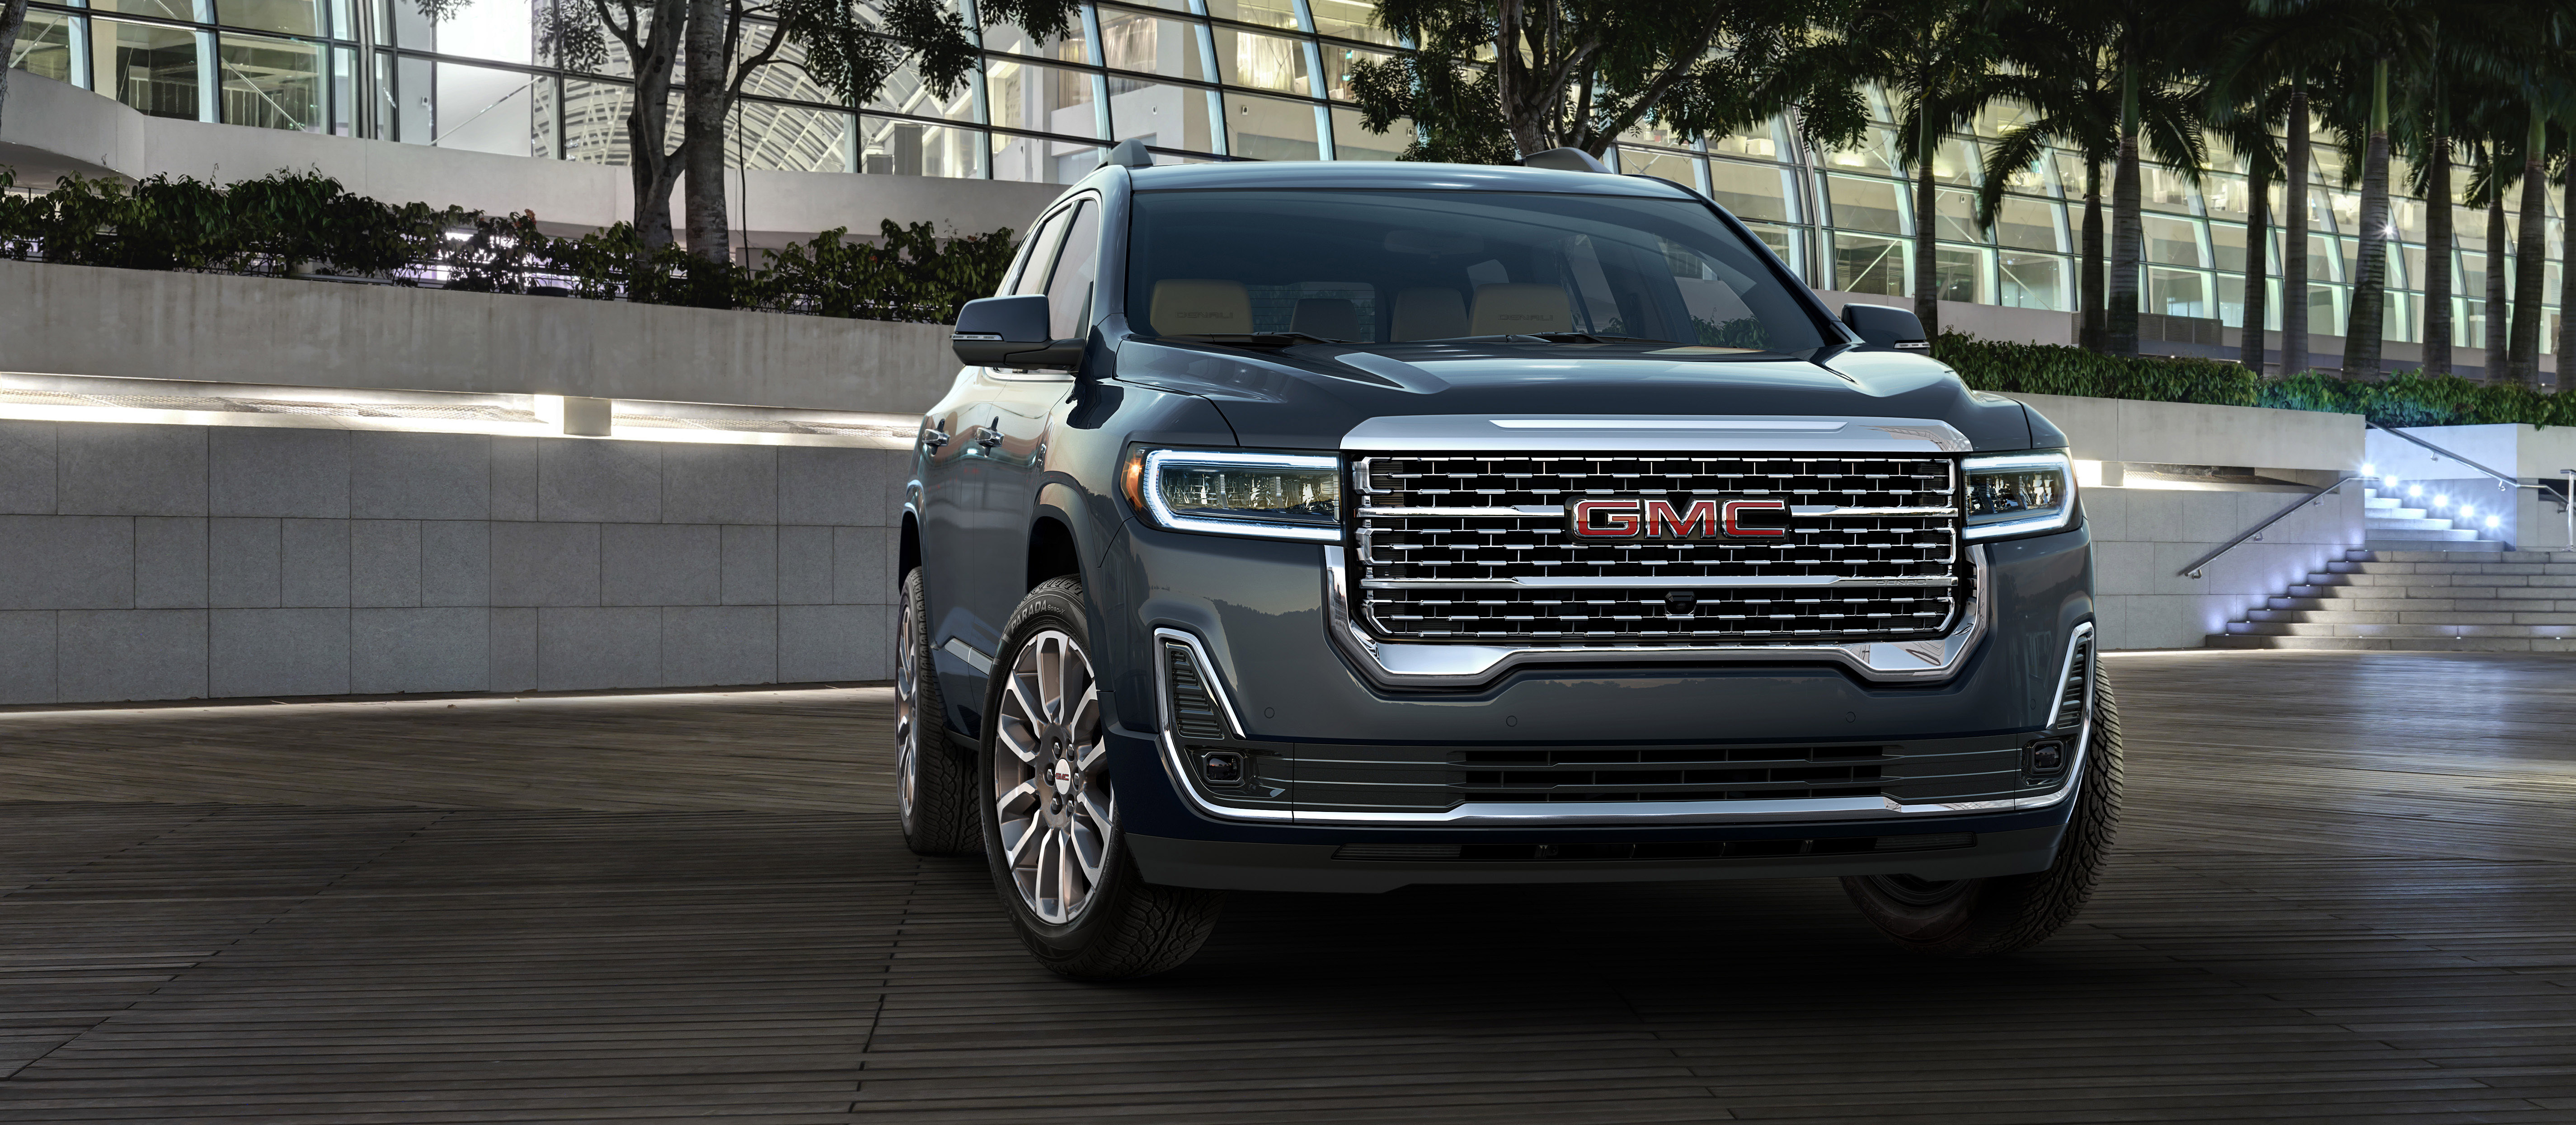 25 The New Gmc Acadia 2020 Wallpaper for New Gmc Acadia 2020